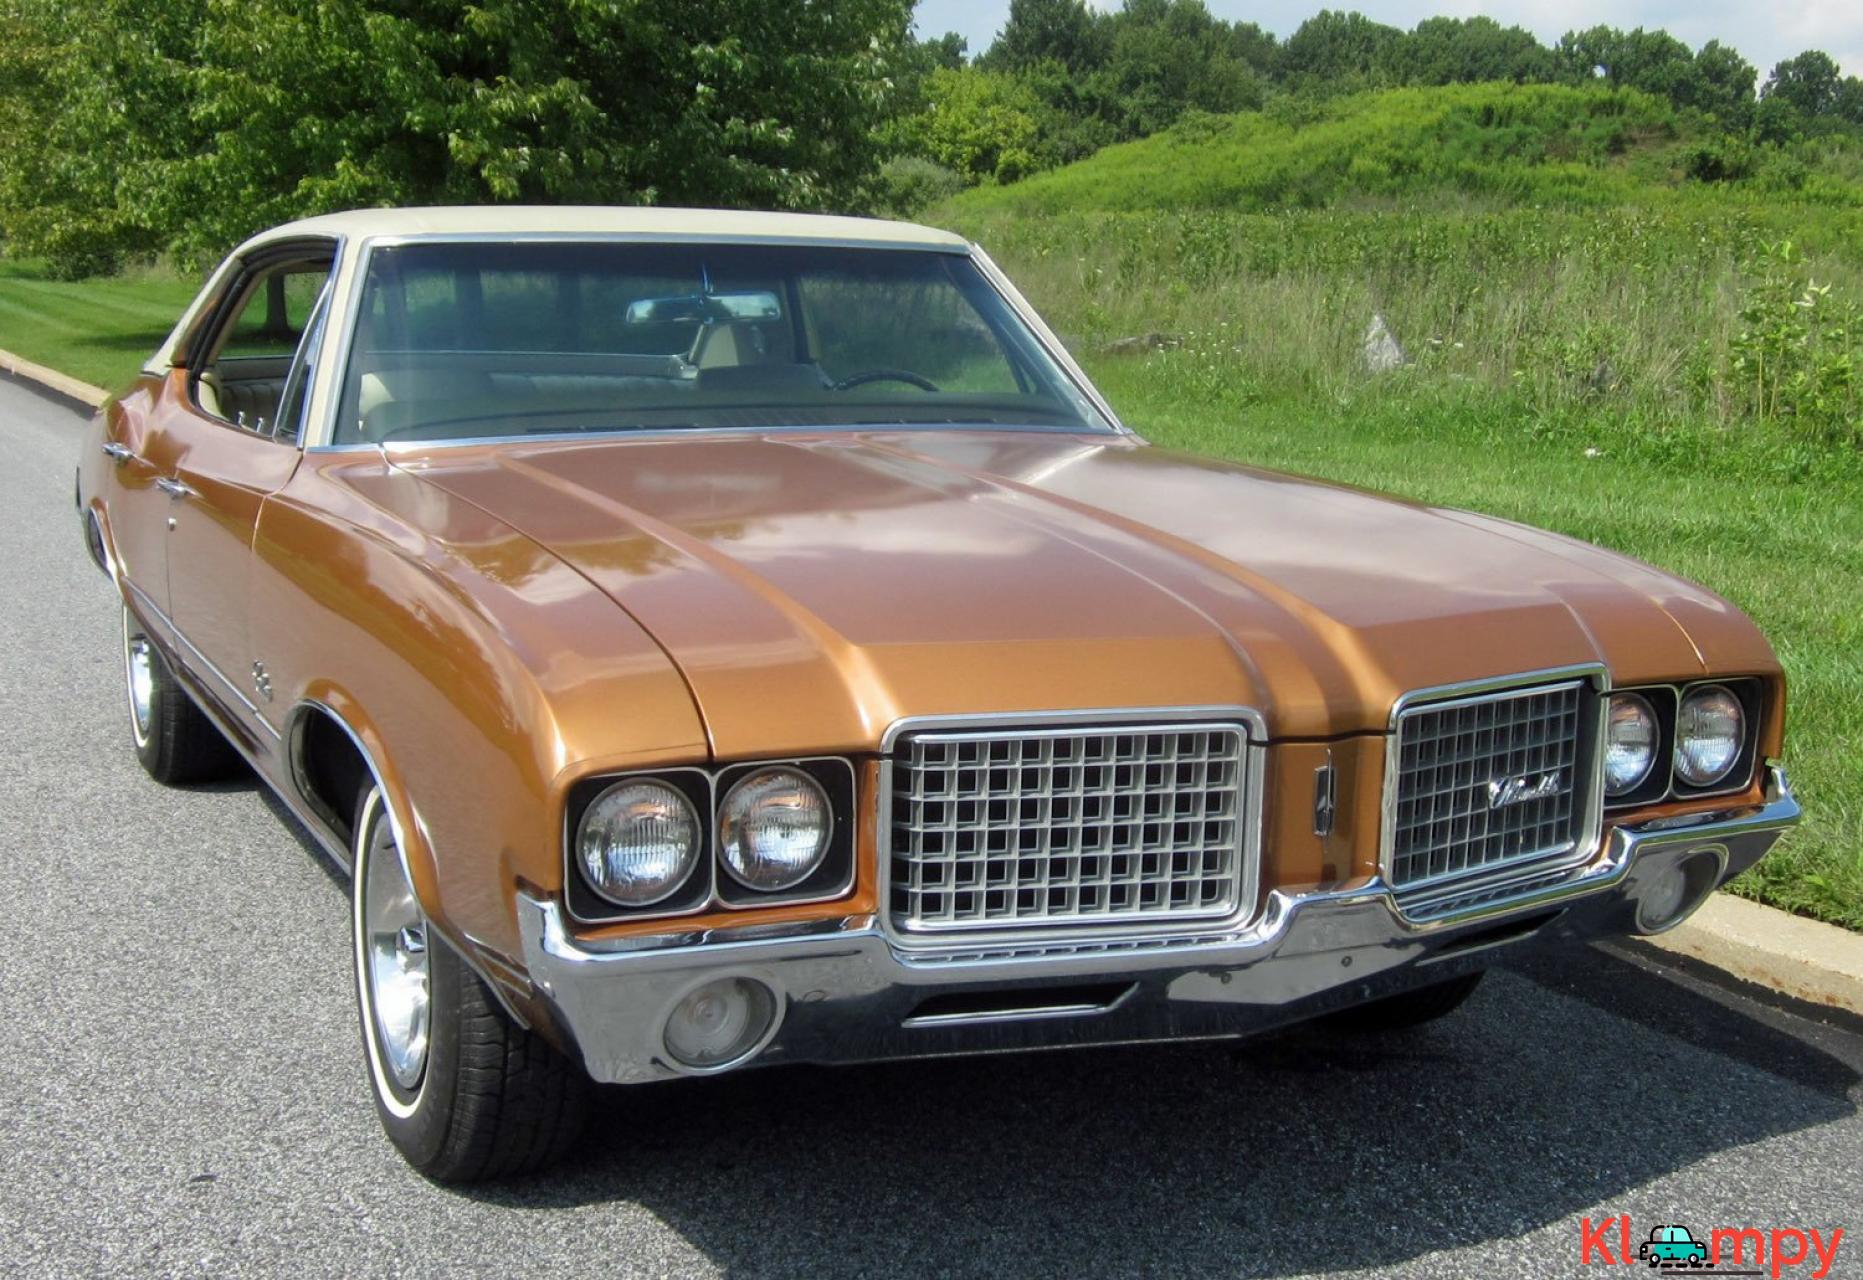 1972 Oldsmobile Cutlass Sport Sedan V8 - 3/20